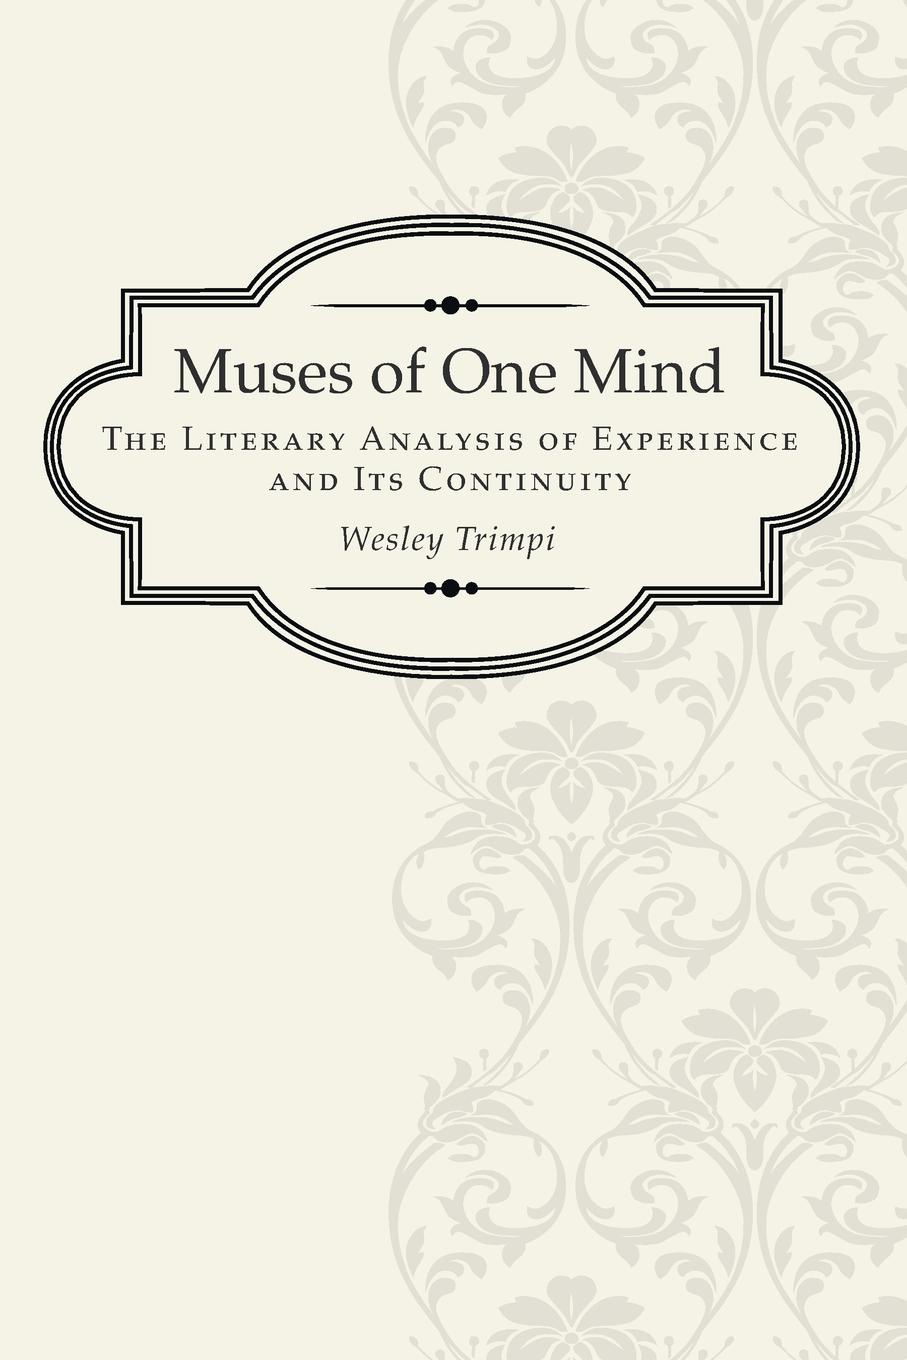 Muses of One Mind. The Literary Analysis of Experience and Its Continuity. Wesley Trimpi